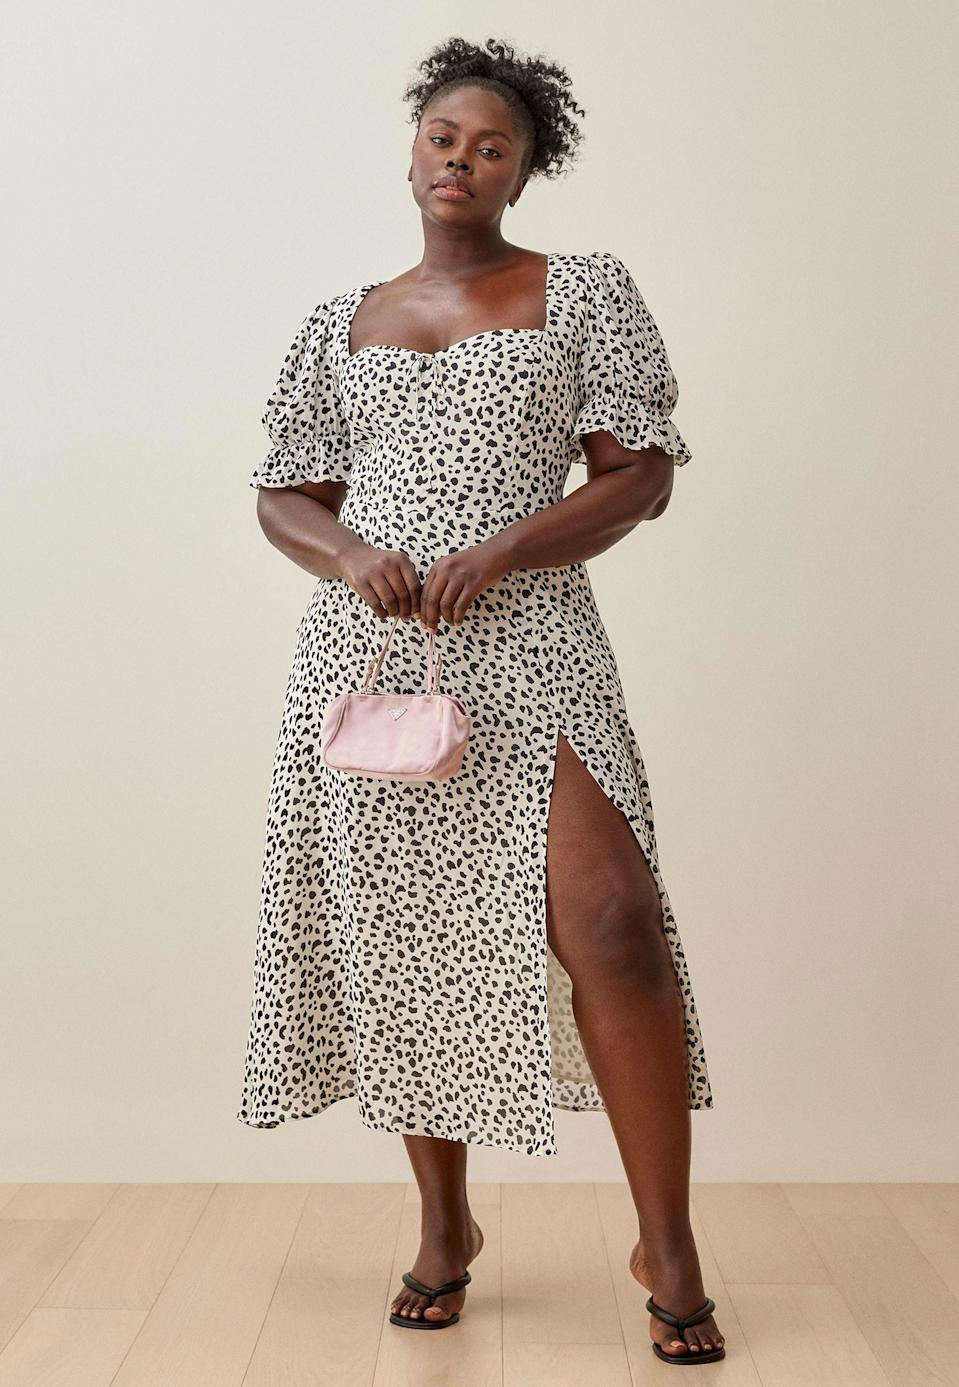 """Reformation is essentially a one-stop-shop for wedding guest cocktail dresses, including this puff-sleeved animal print dress. $248, Reformation. <a href=""""https://www.thereformation.com/products/alta-dress-es?color=Ocelot&via=Z2lkOi8vcmVmb3JtYXRpb24td2VibGluYy9Xb3JrYXJlYTo6Q2F0YWxvZzo6Q2F0ZWdvcnkvNWE2YWRmZDJmOTJlYTExNmNmMDRlOWM2"""" rel=""""nofollow noopener"""" target=""""_blank"""" data-ylk=""""slk:Get it now!"""" class=""""link rapid-noclick-resp"""">Get it now!</a>"""